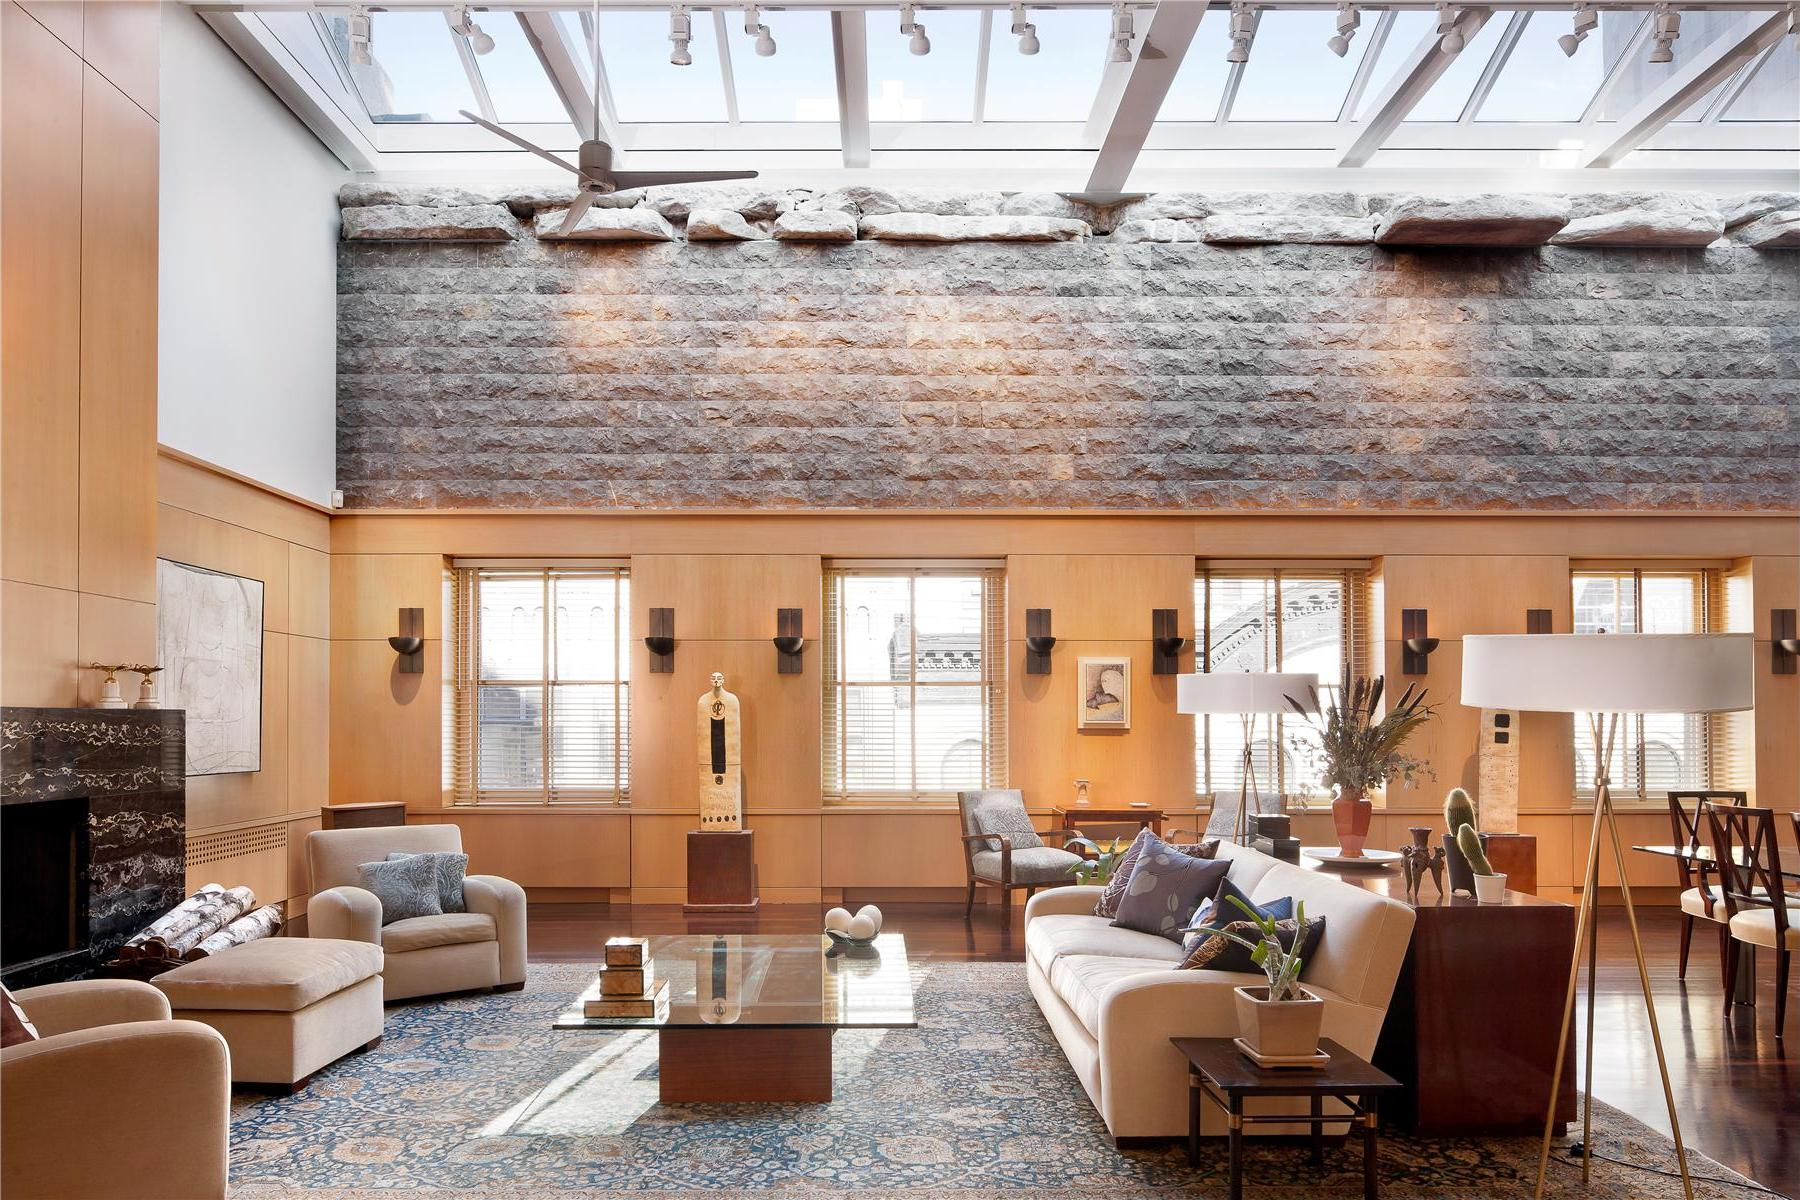 Superb luxury penthouse in tribeca new york for Penthouses for sale in manhattan